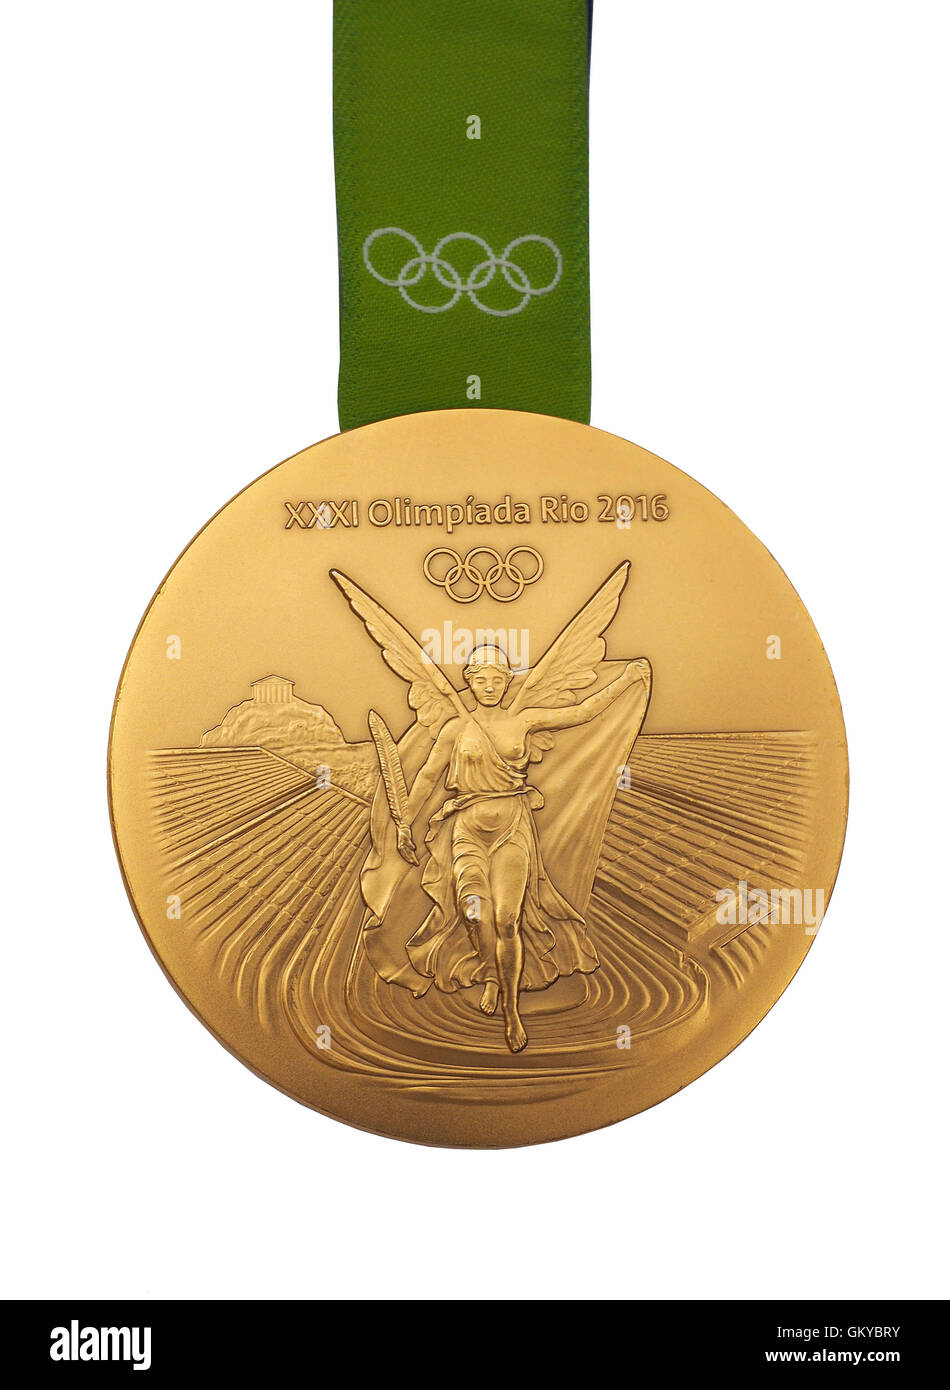 Gold medal from Rio 2016 Olympic Games Stock Photo